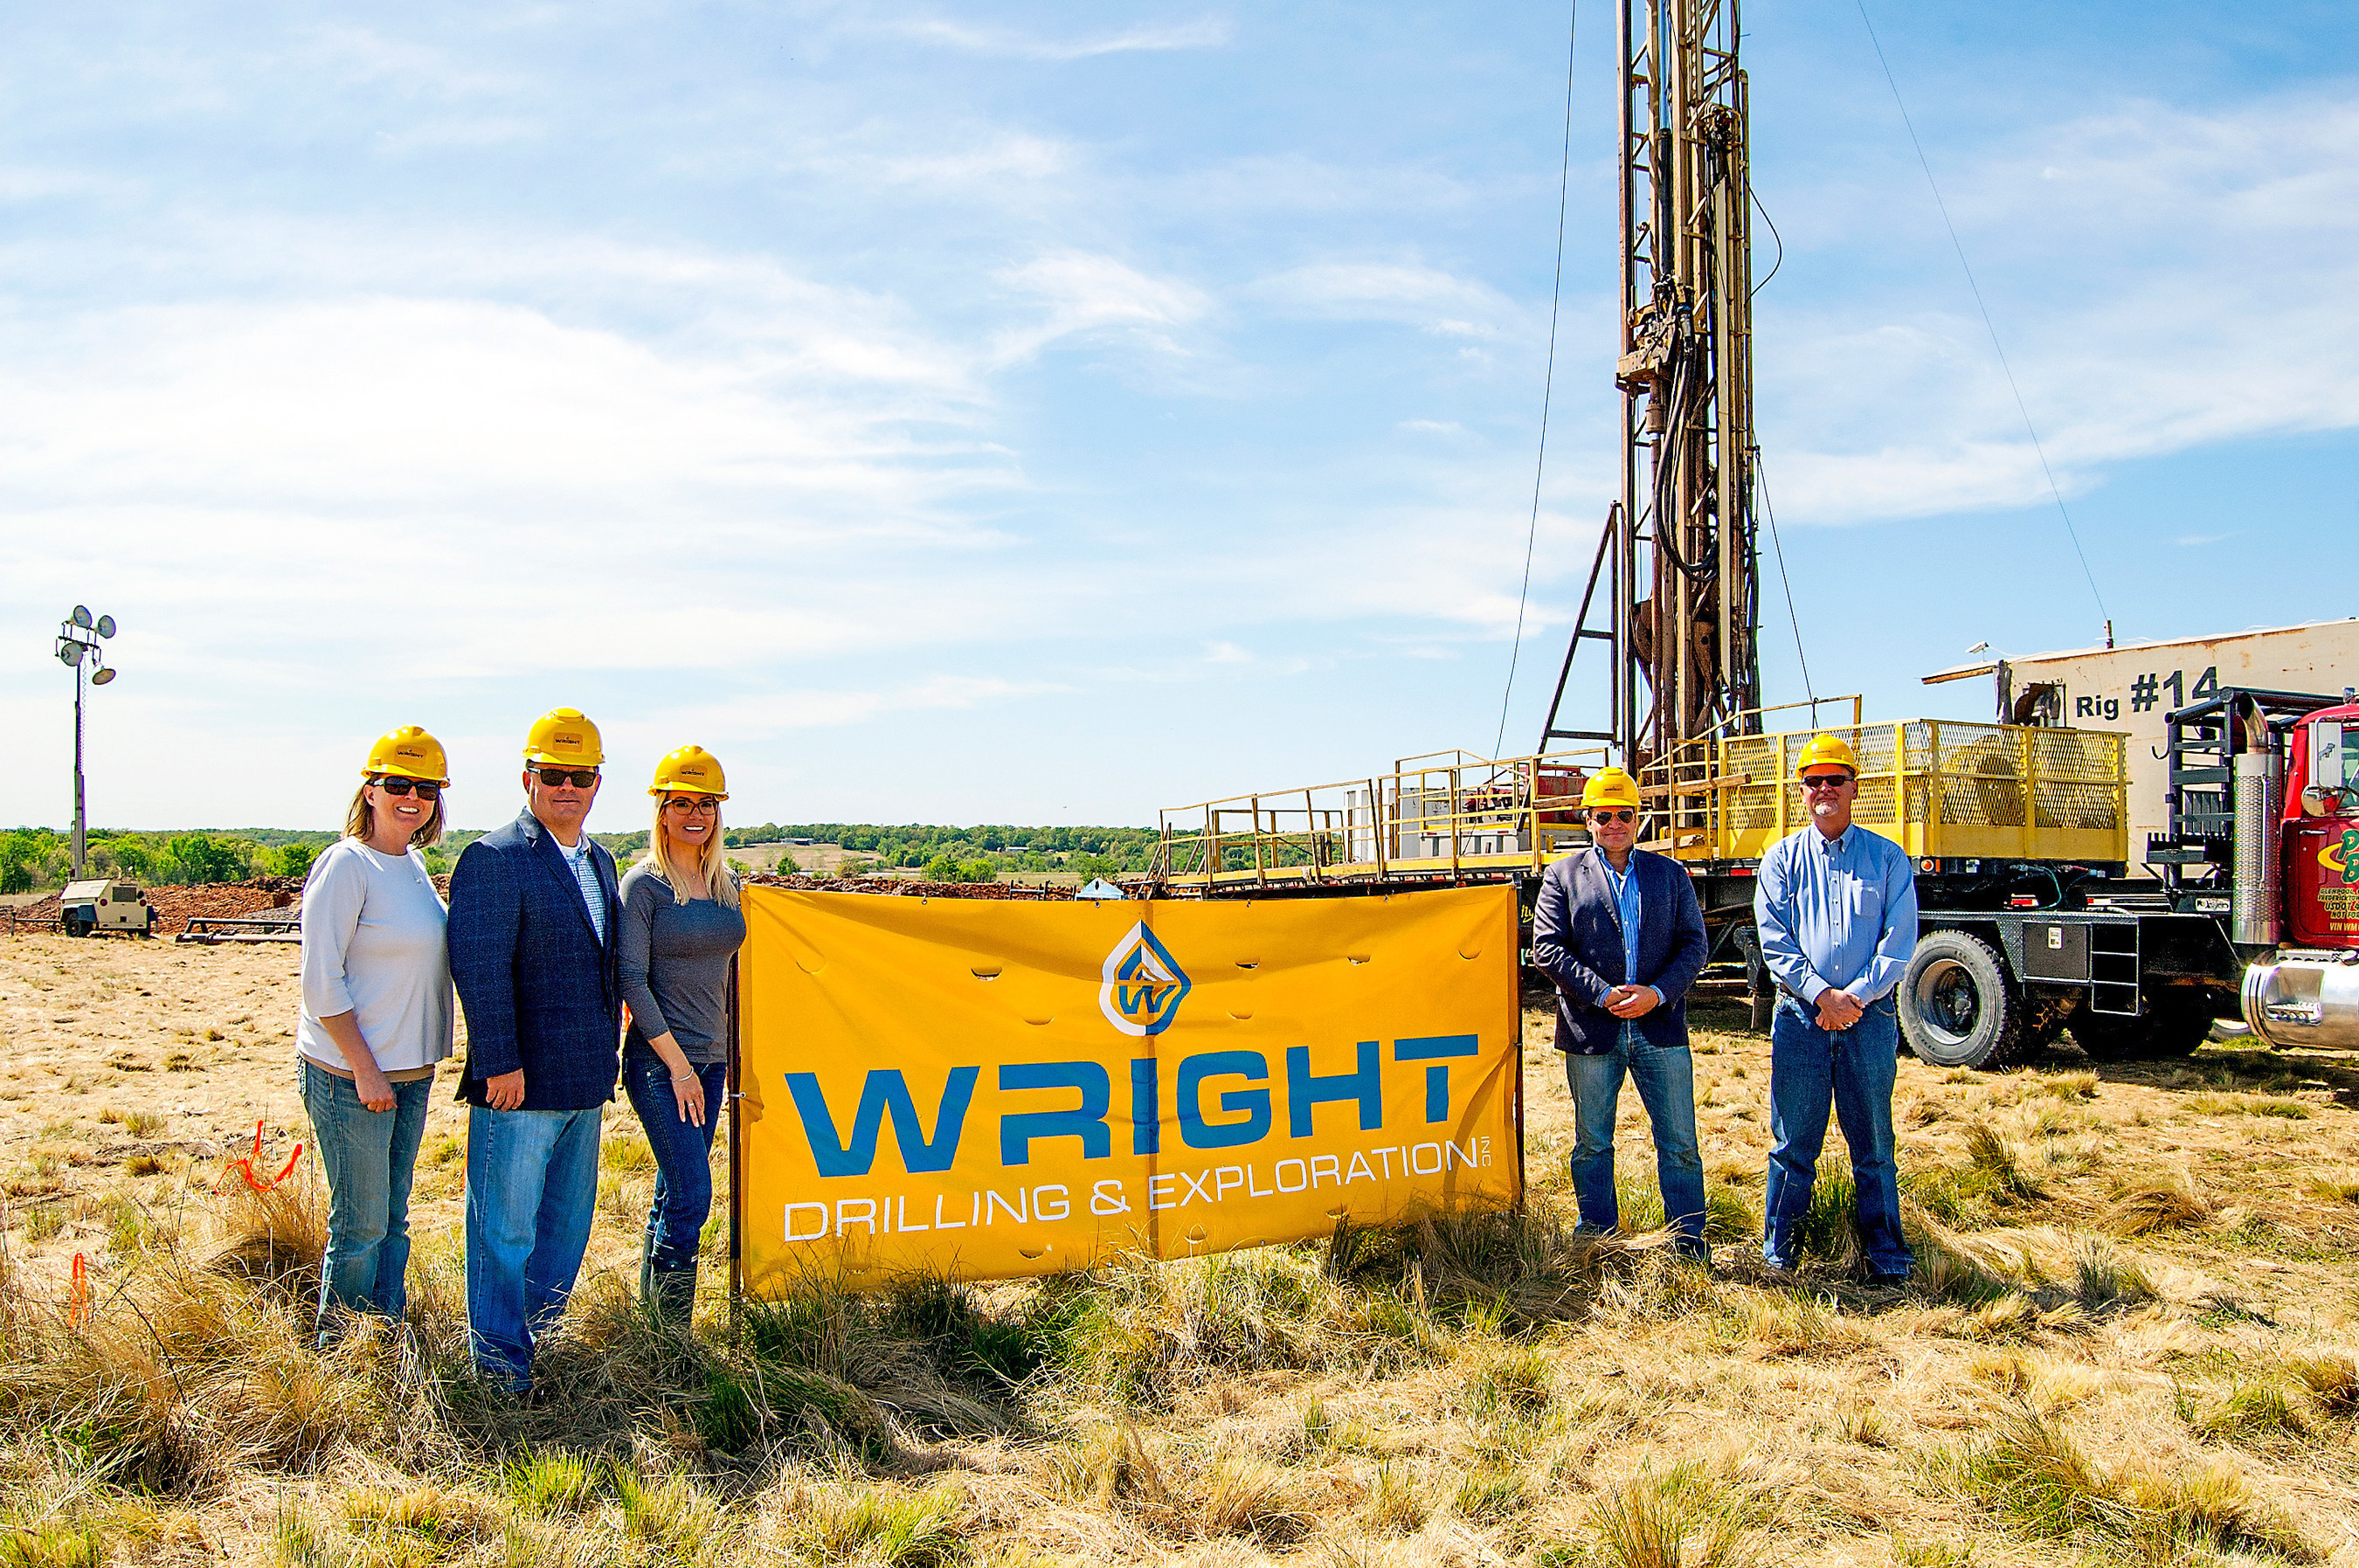 Wright Drilling & Exploration